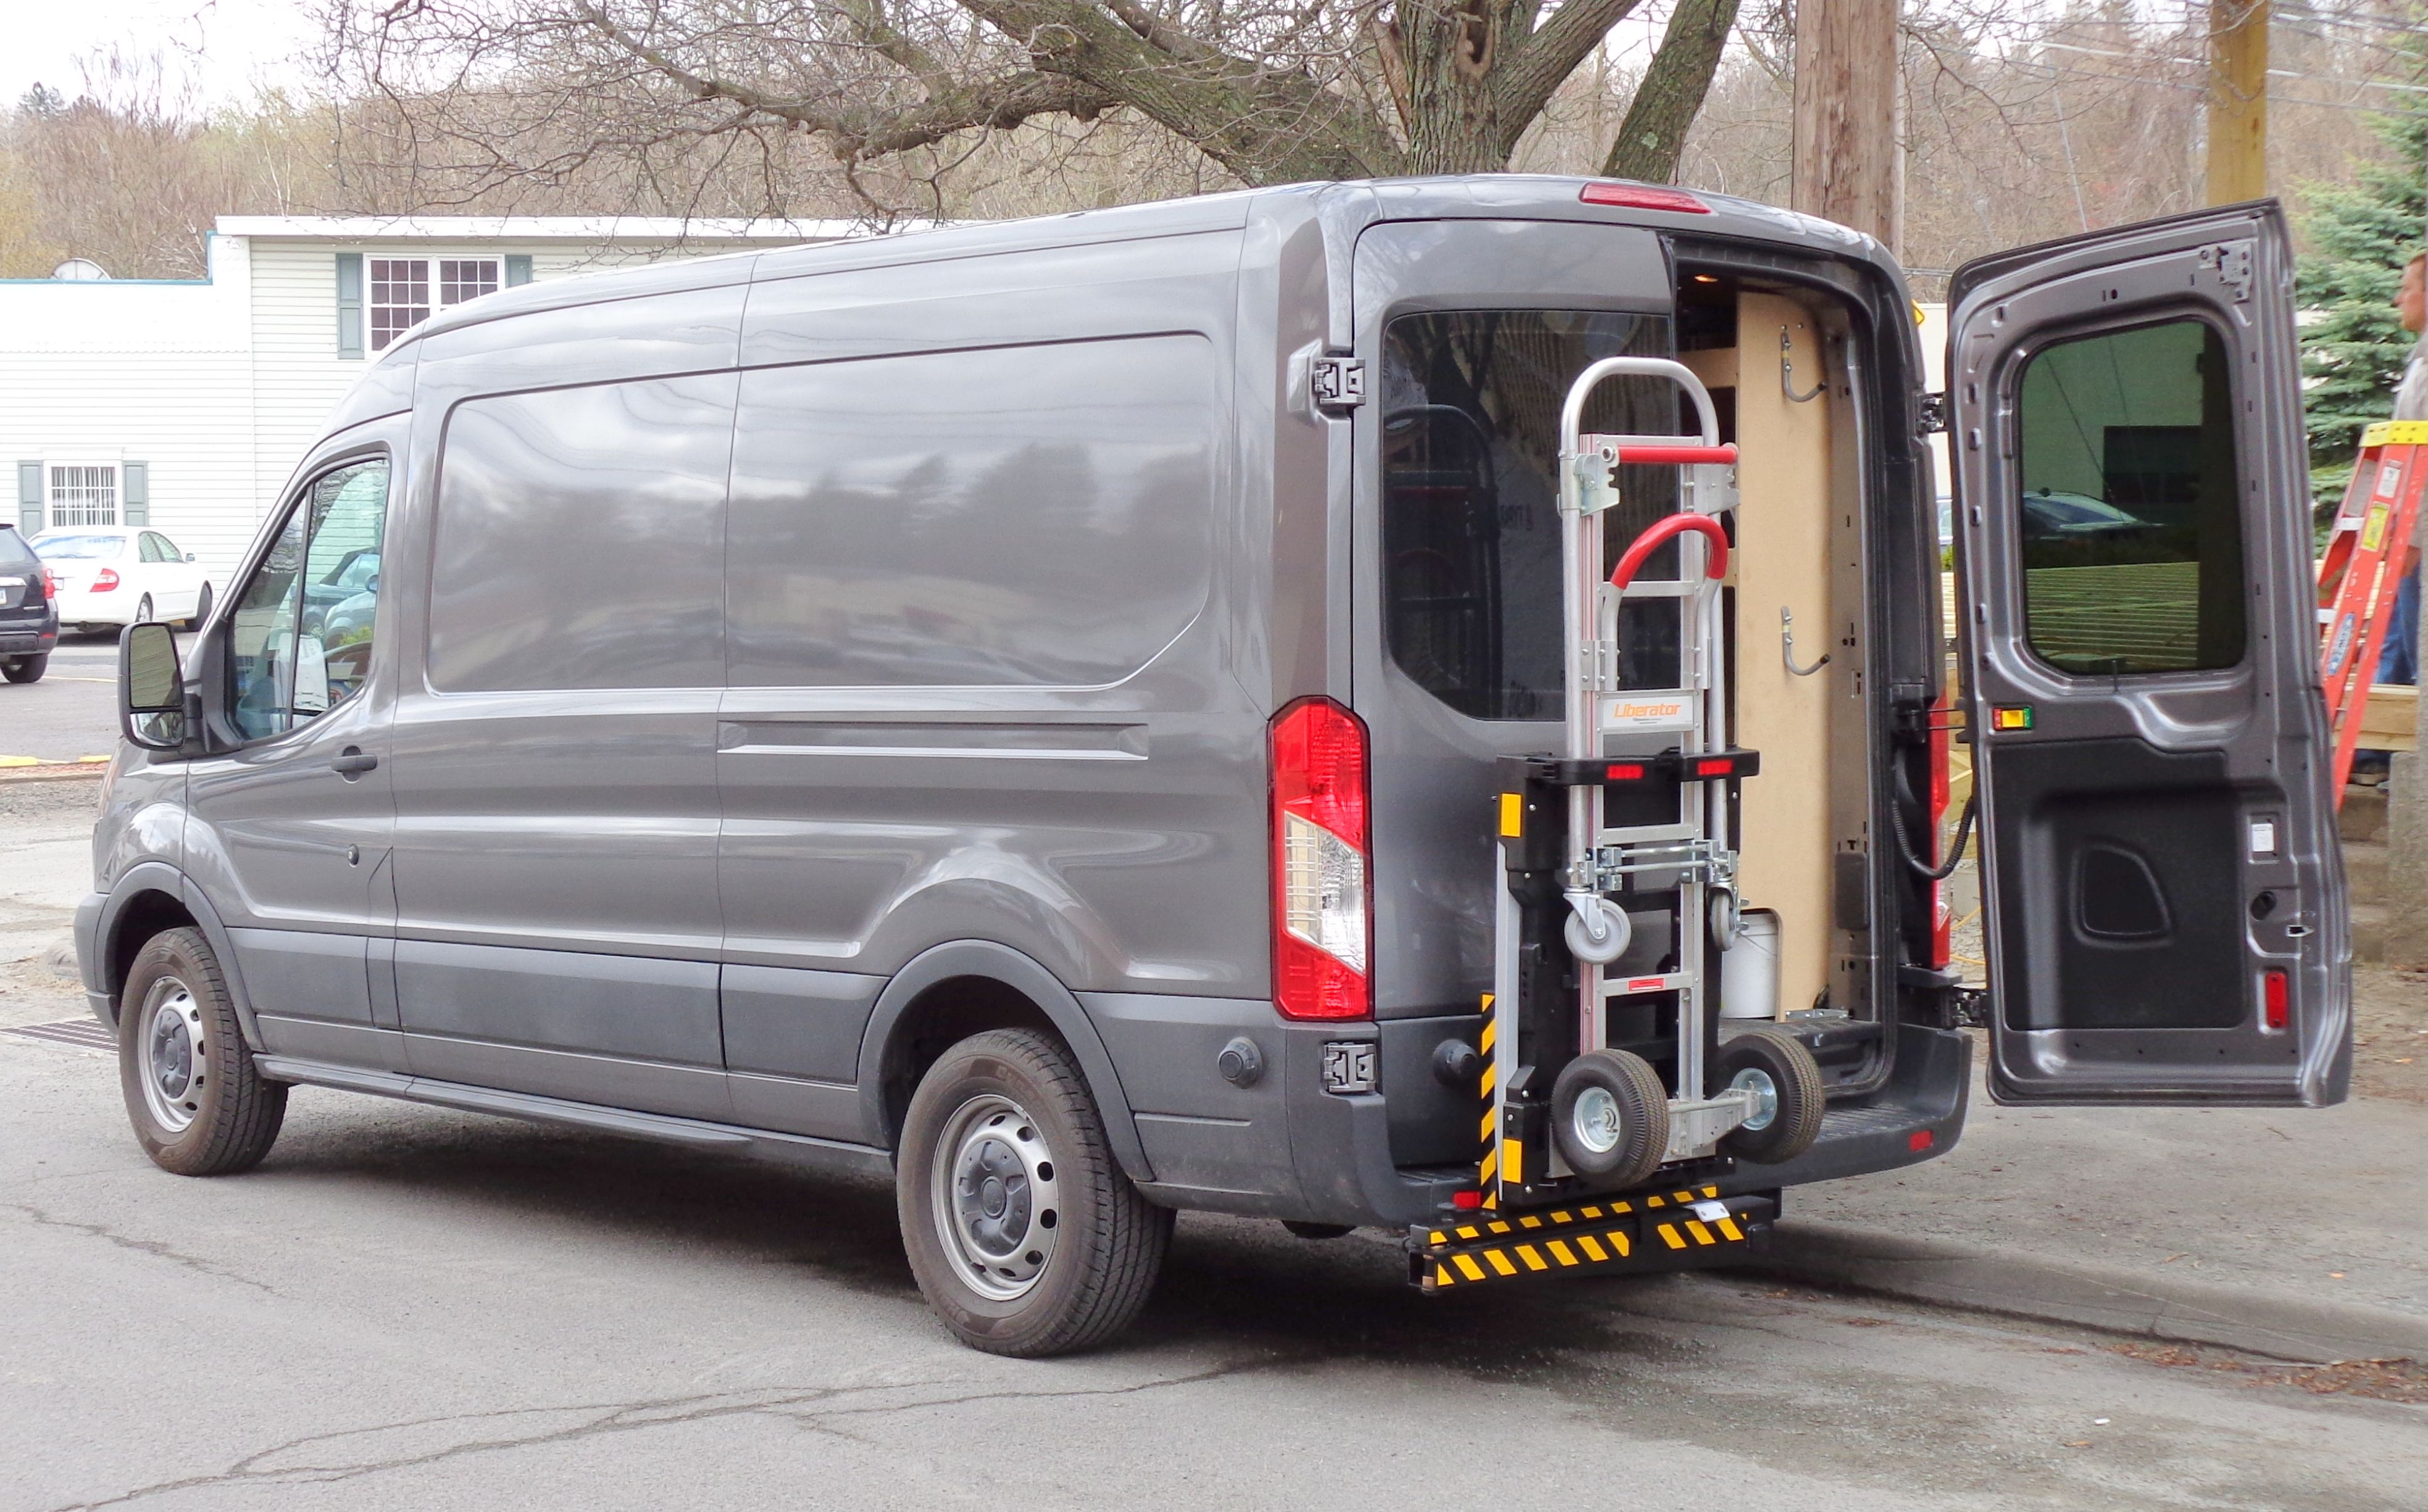 Hts systems hts20sfth hand truck sentry system reduces